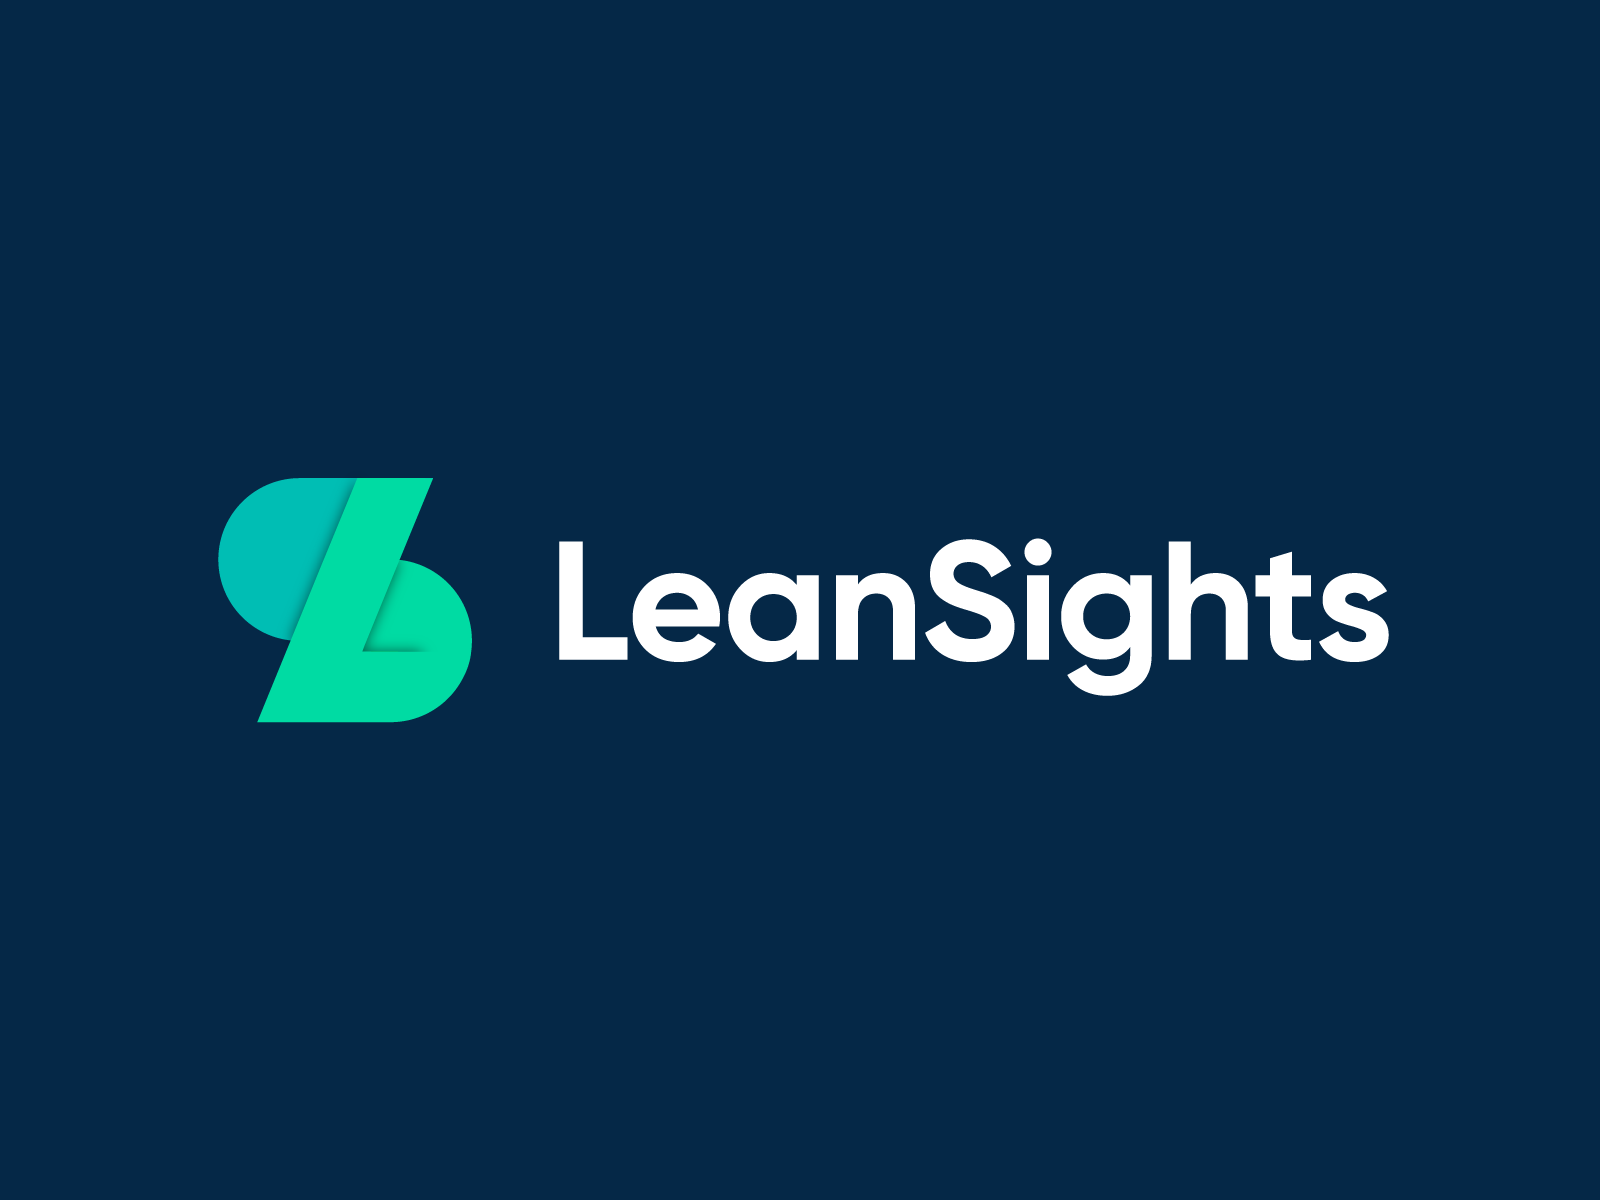 Leansights approved